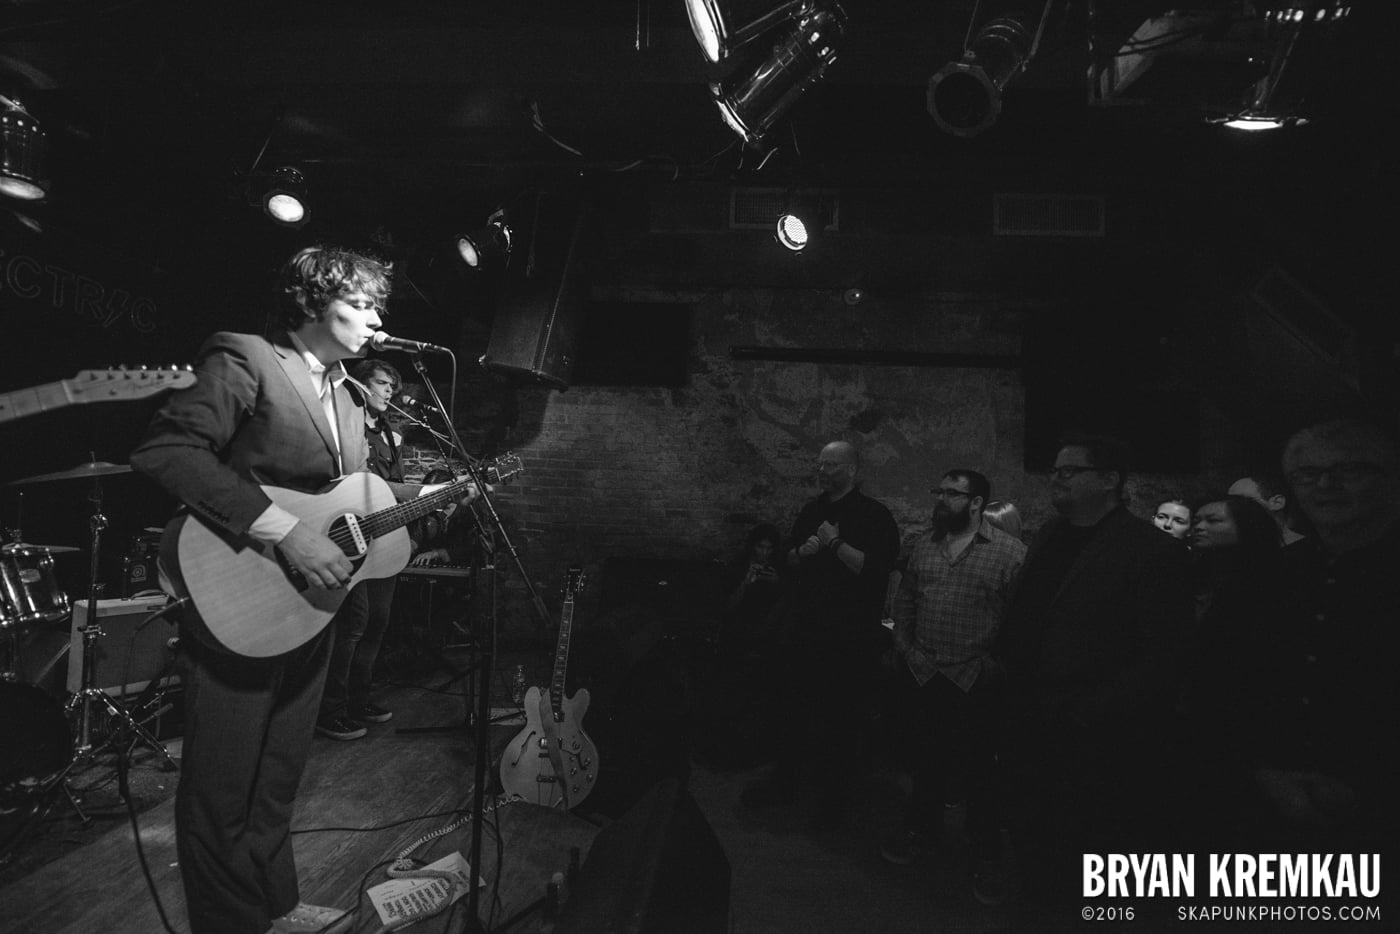 Trapper Schoepp & The Shades @ Bowery Electric, NYC - 11.20.14 (43)